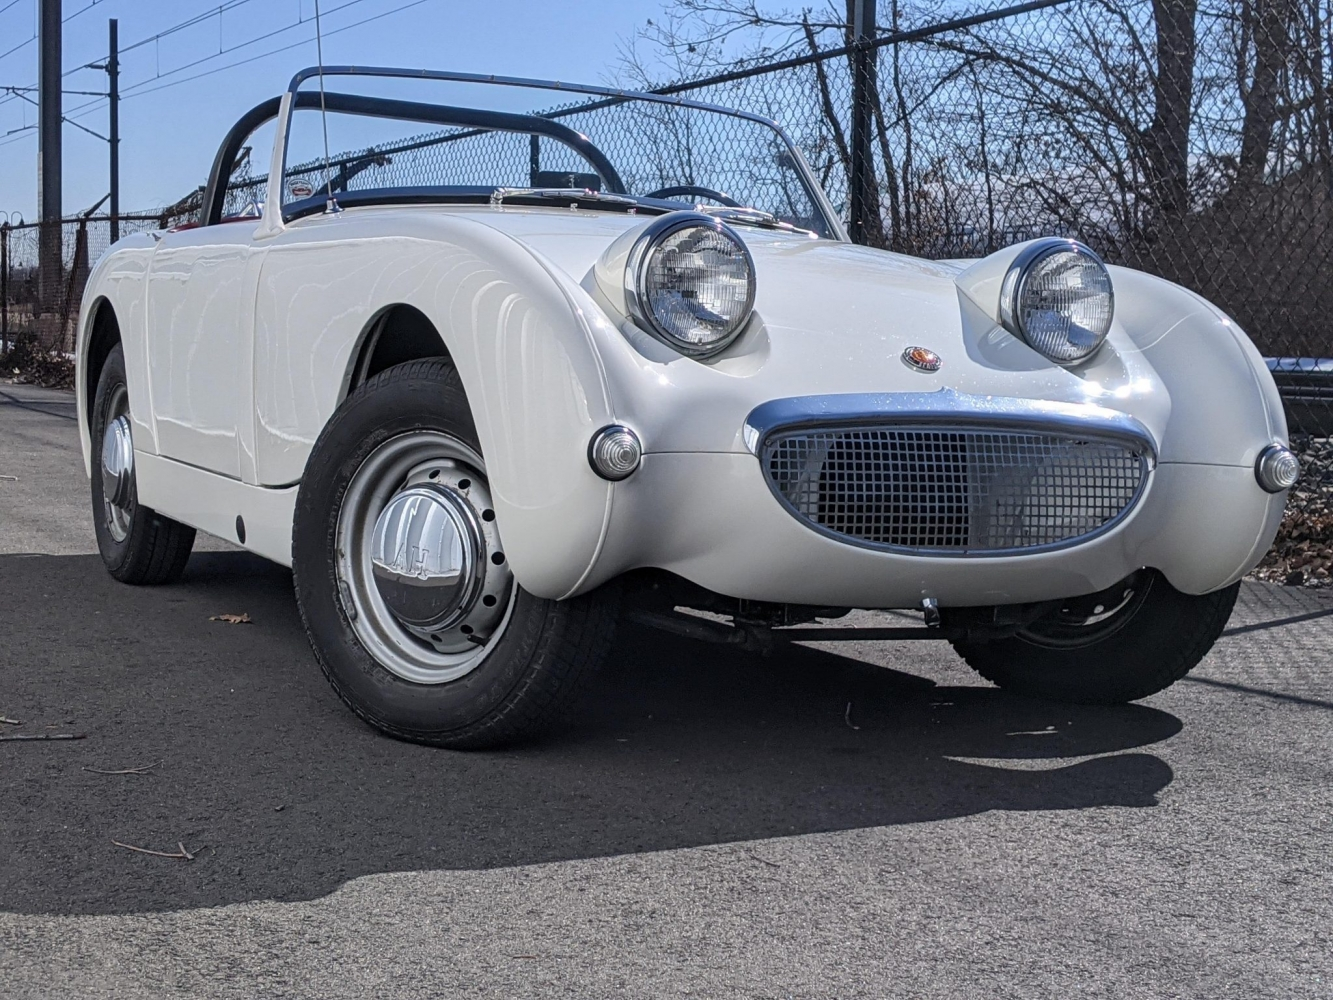 Swell 1958 Bugeye with 1275 and Disc Brakes for Sale!